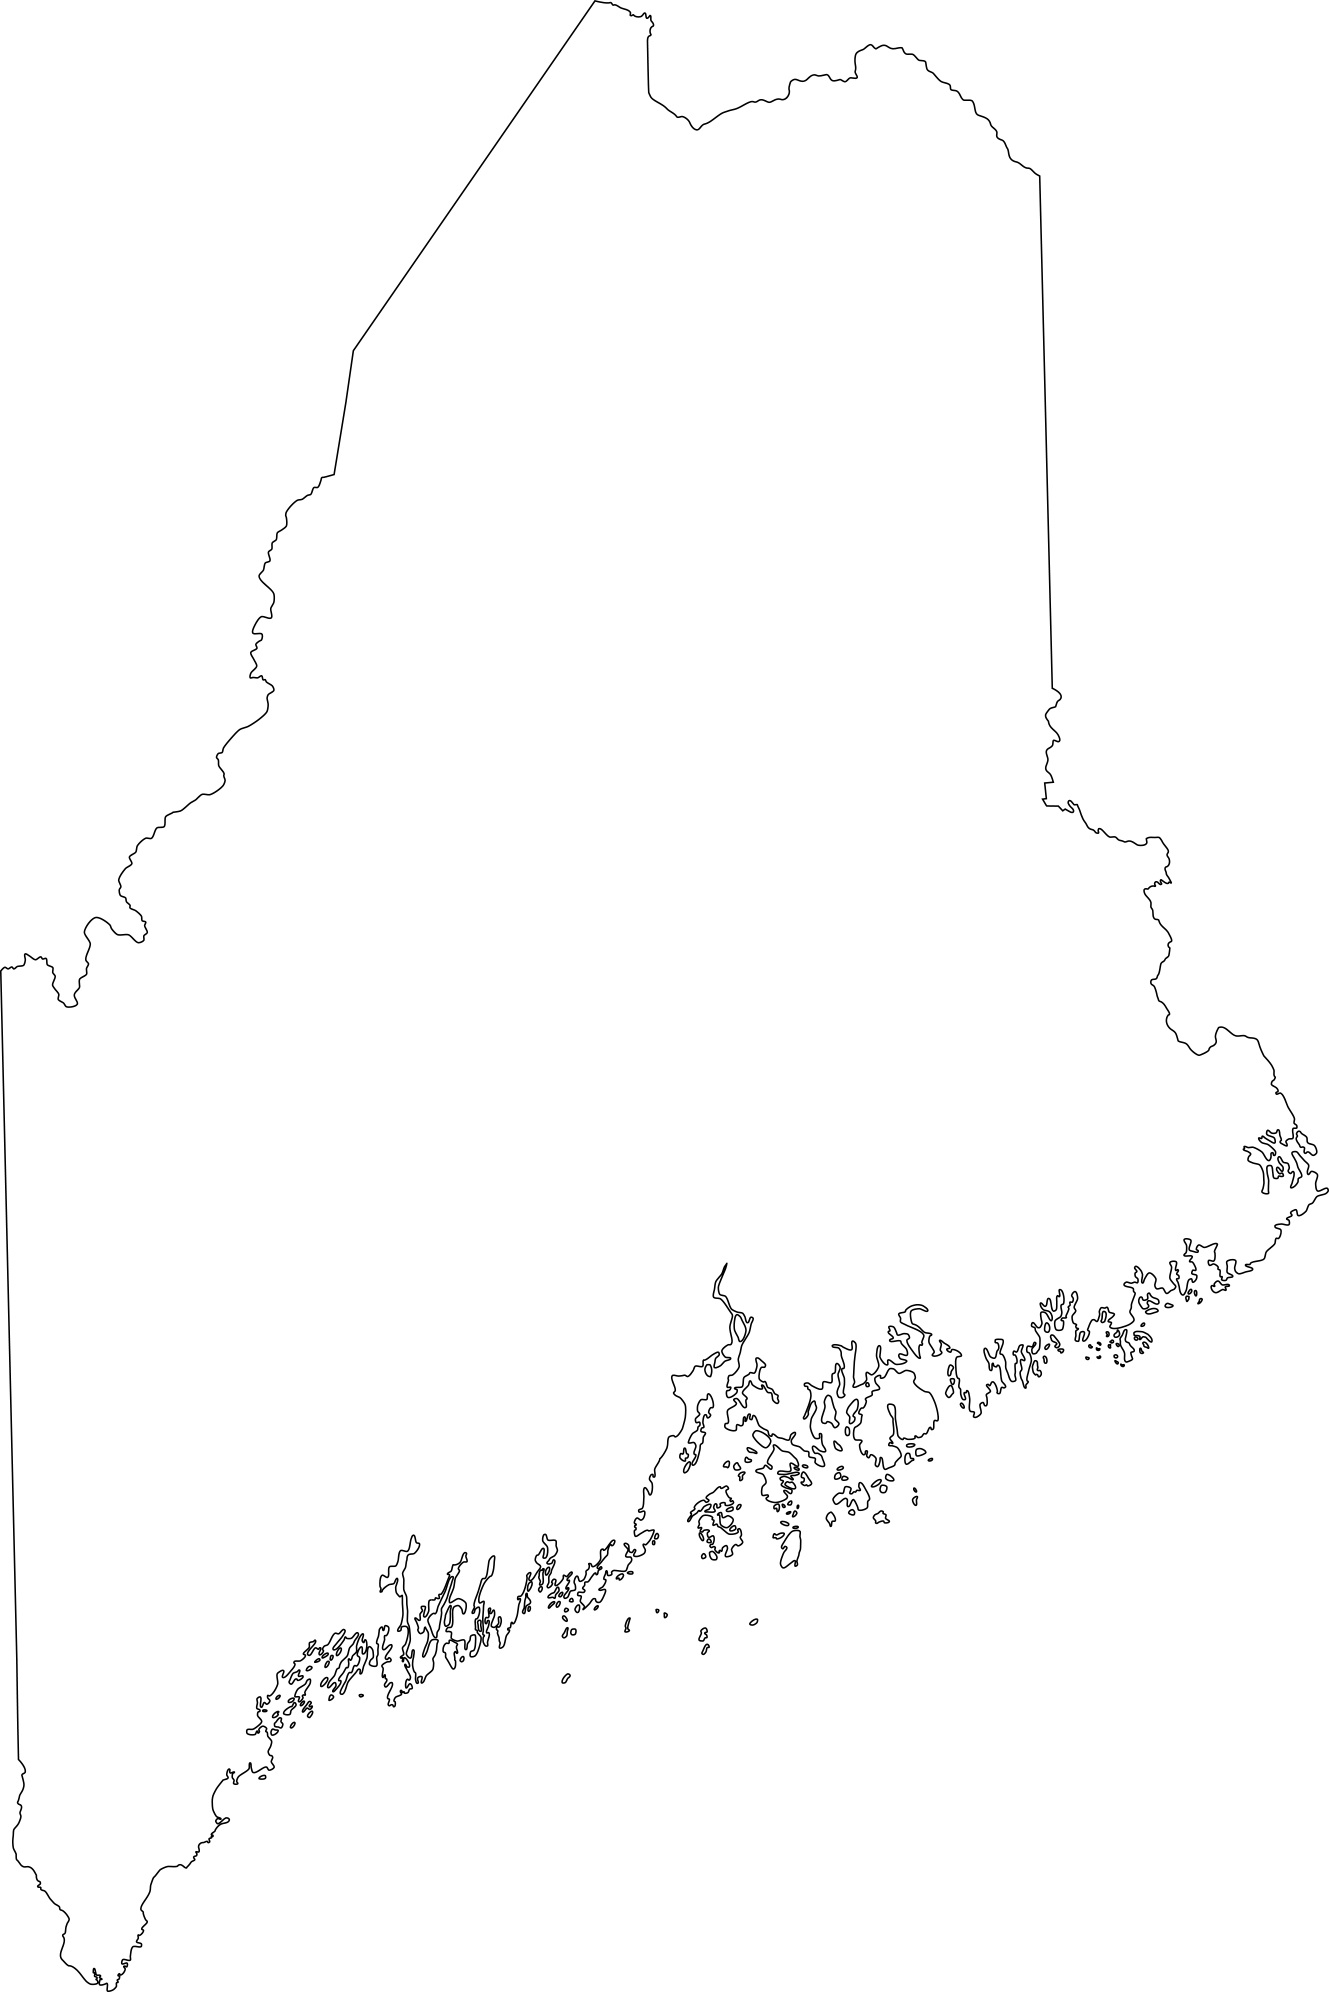 Maine blank outline Map | Large Printable High Resolution and Standard Map